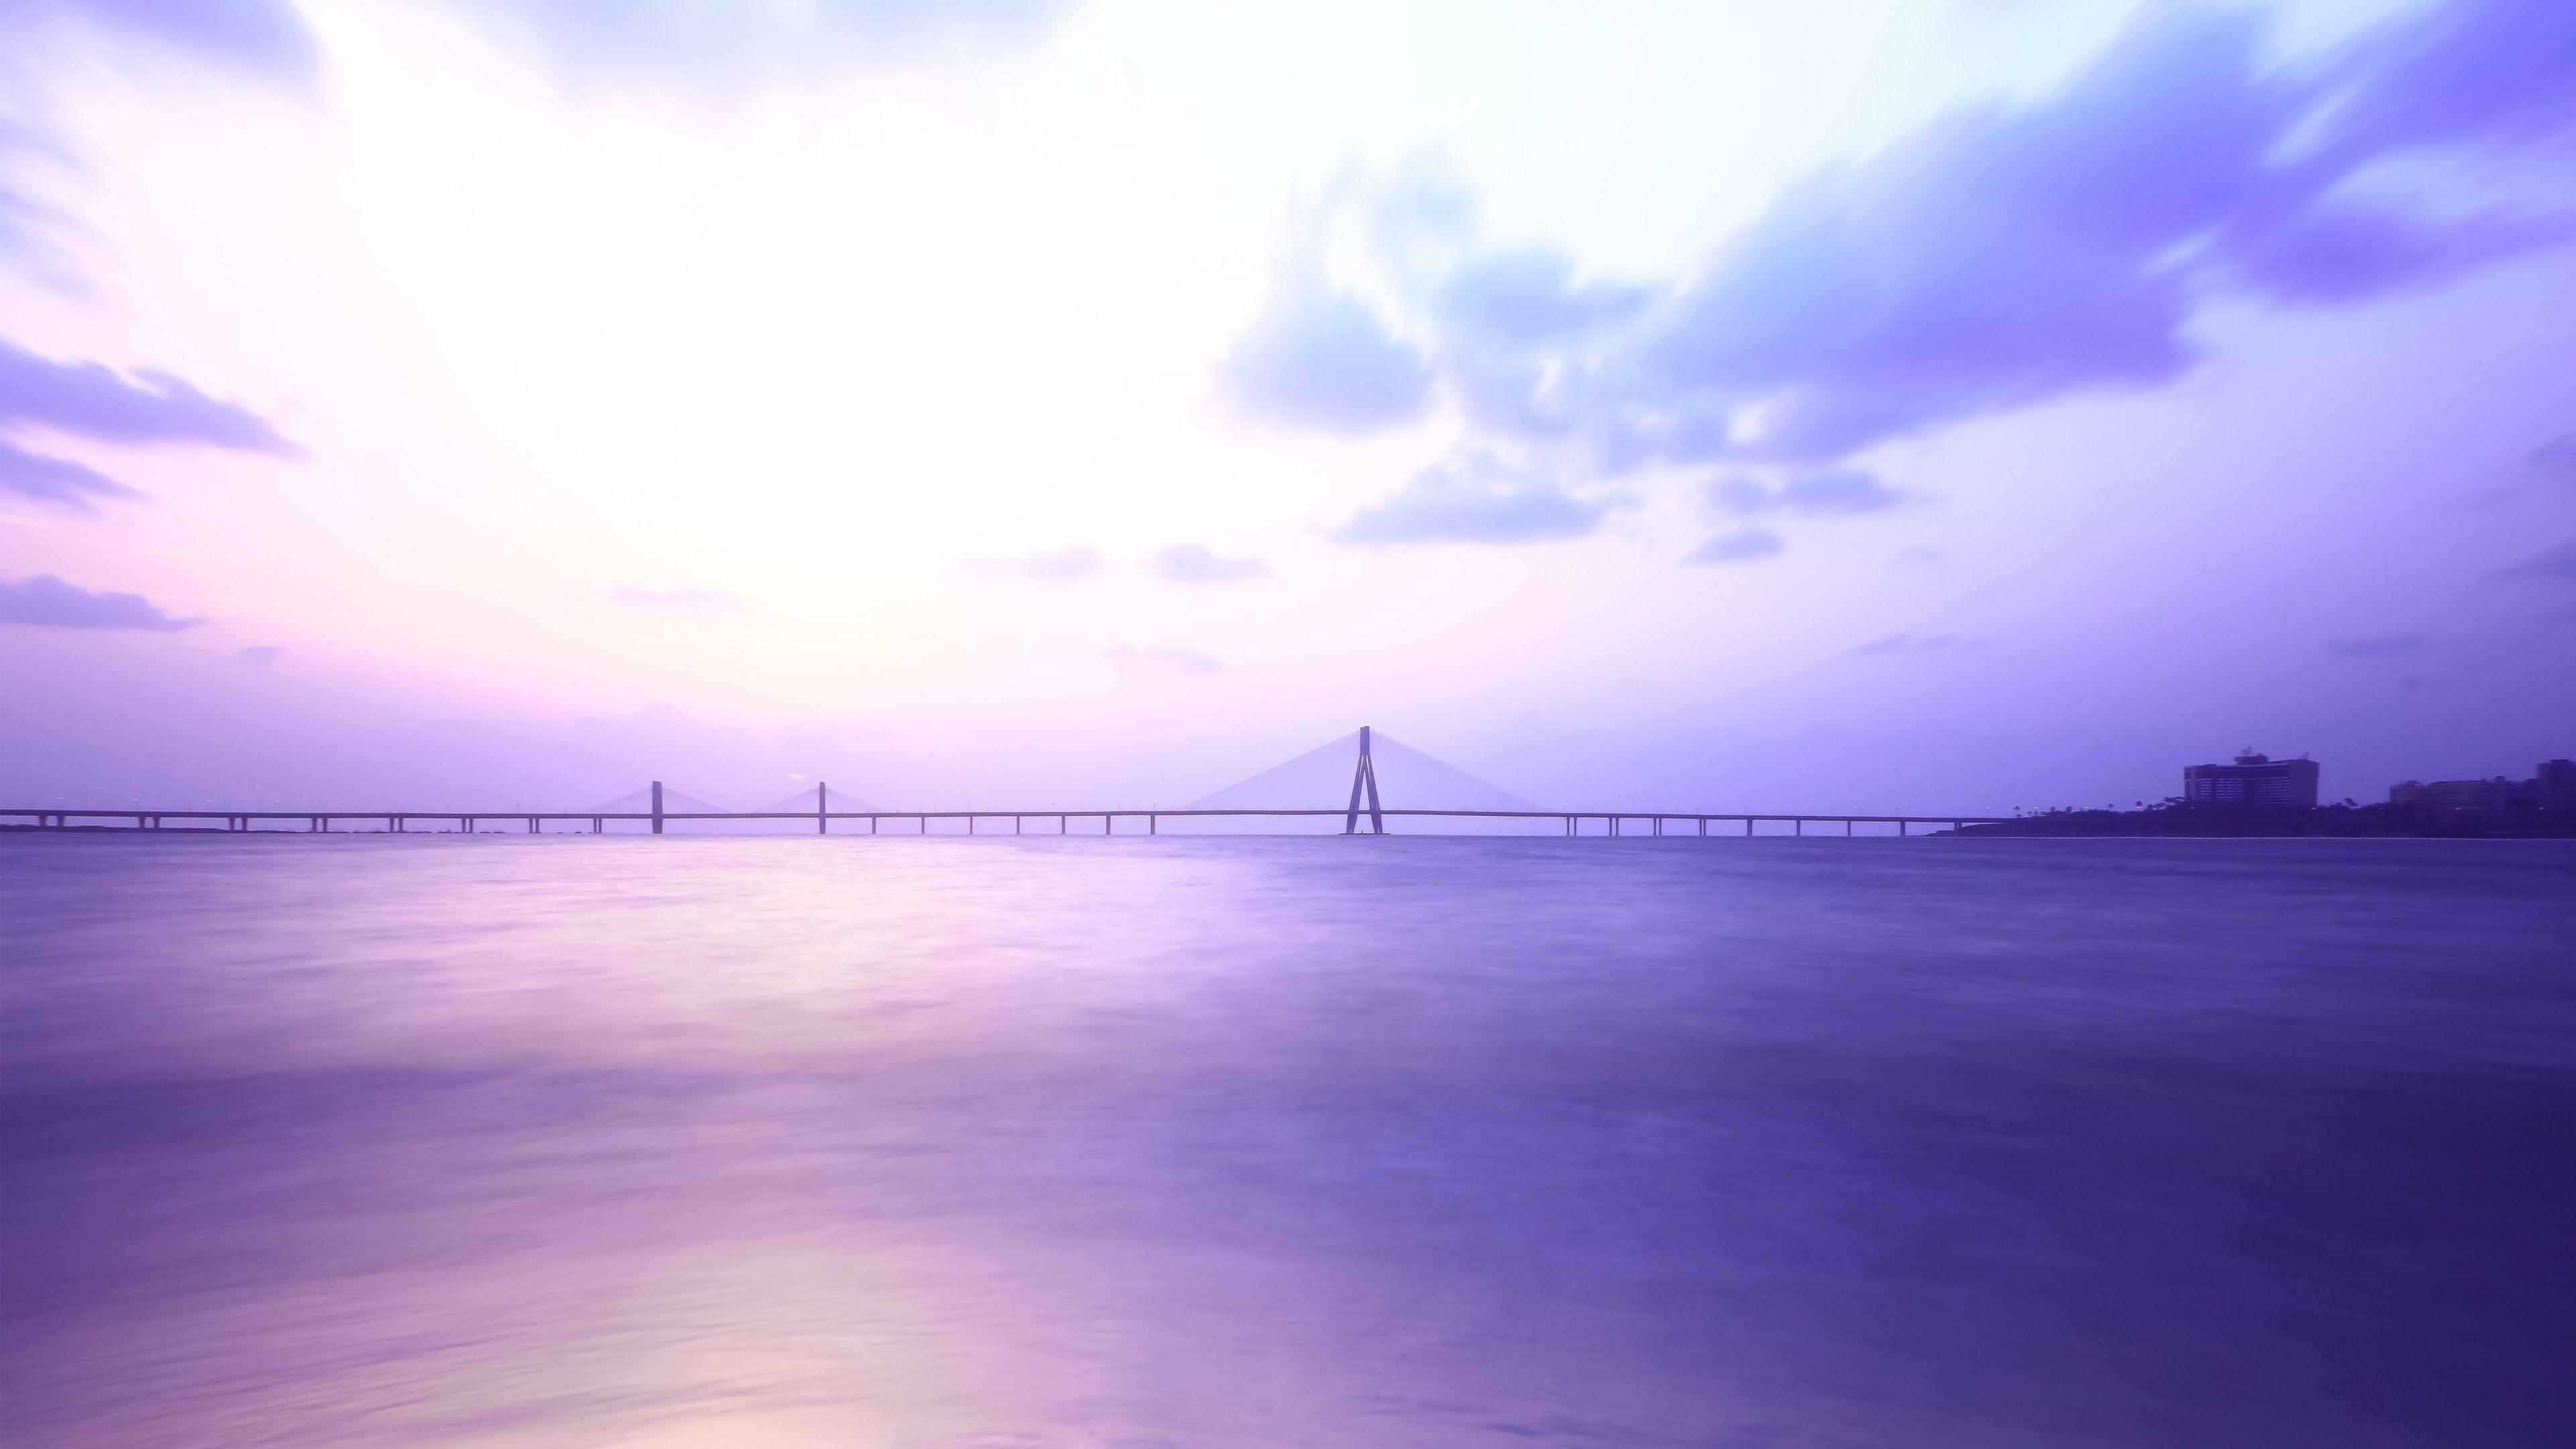 Shivaji Park Bridge Mumbai Wallpapers in jpg format for free download